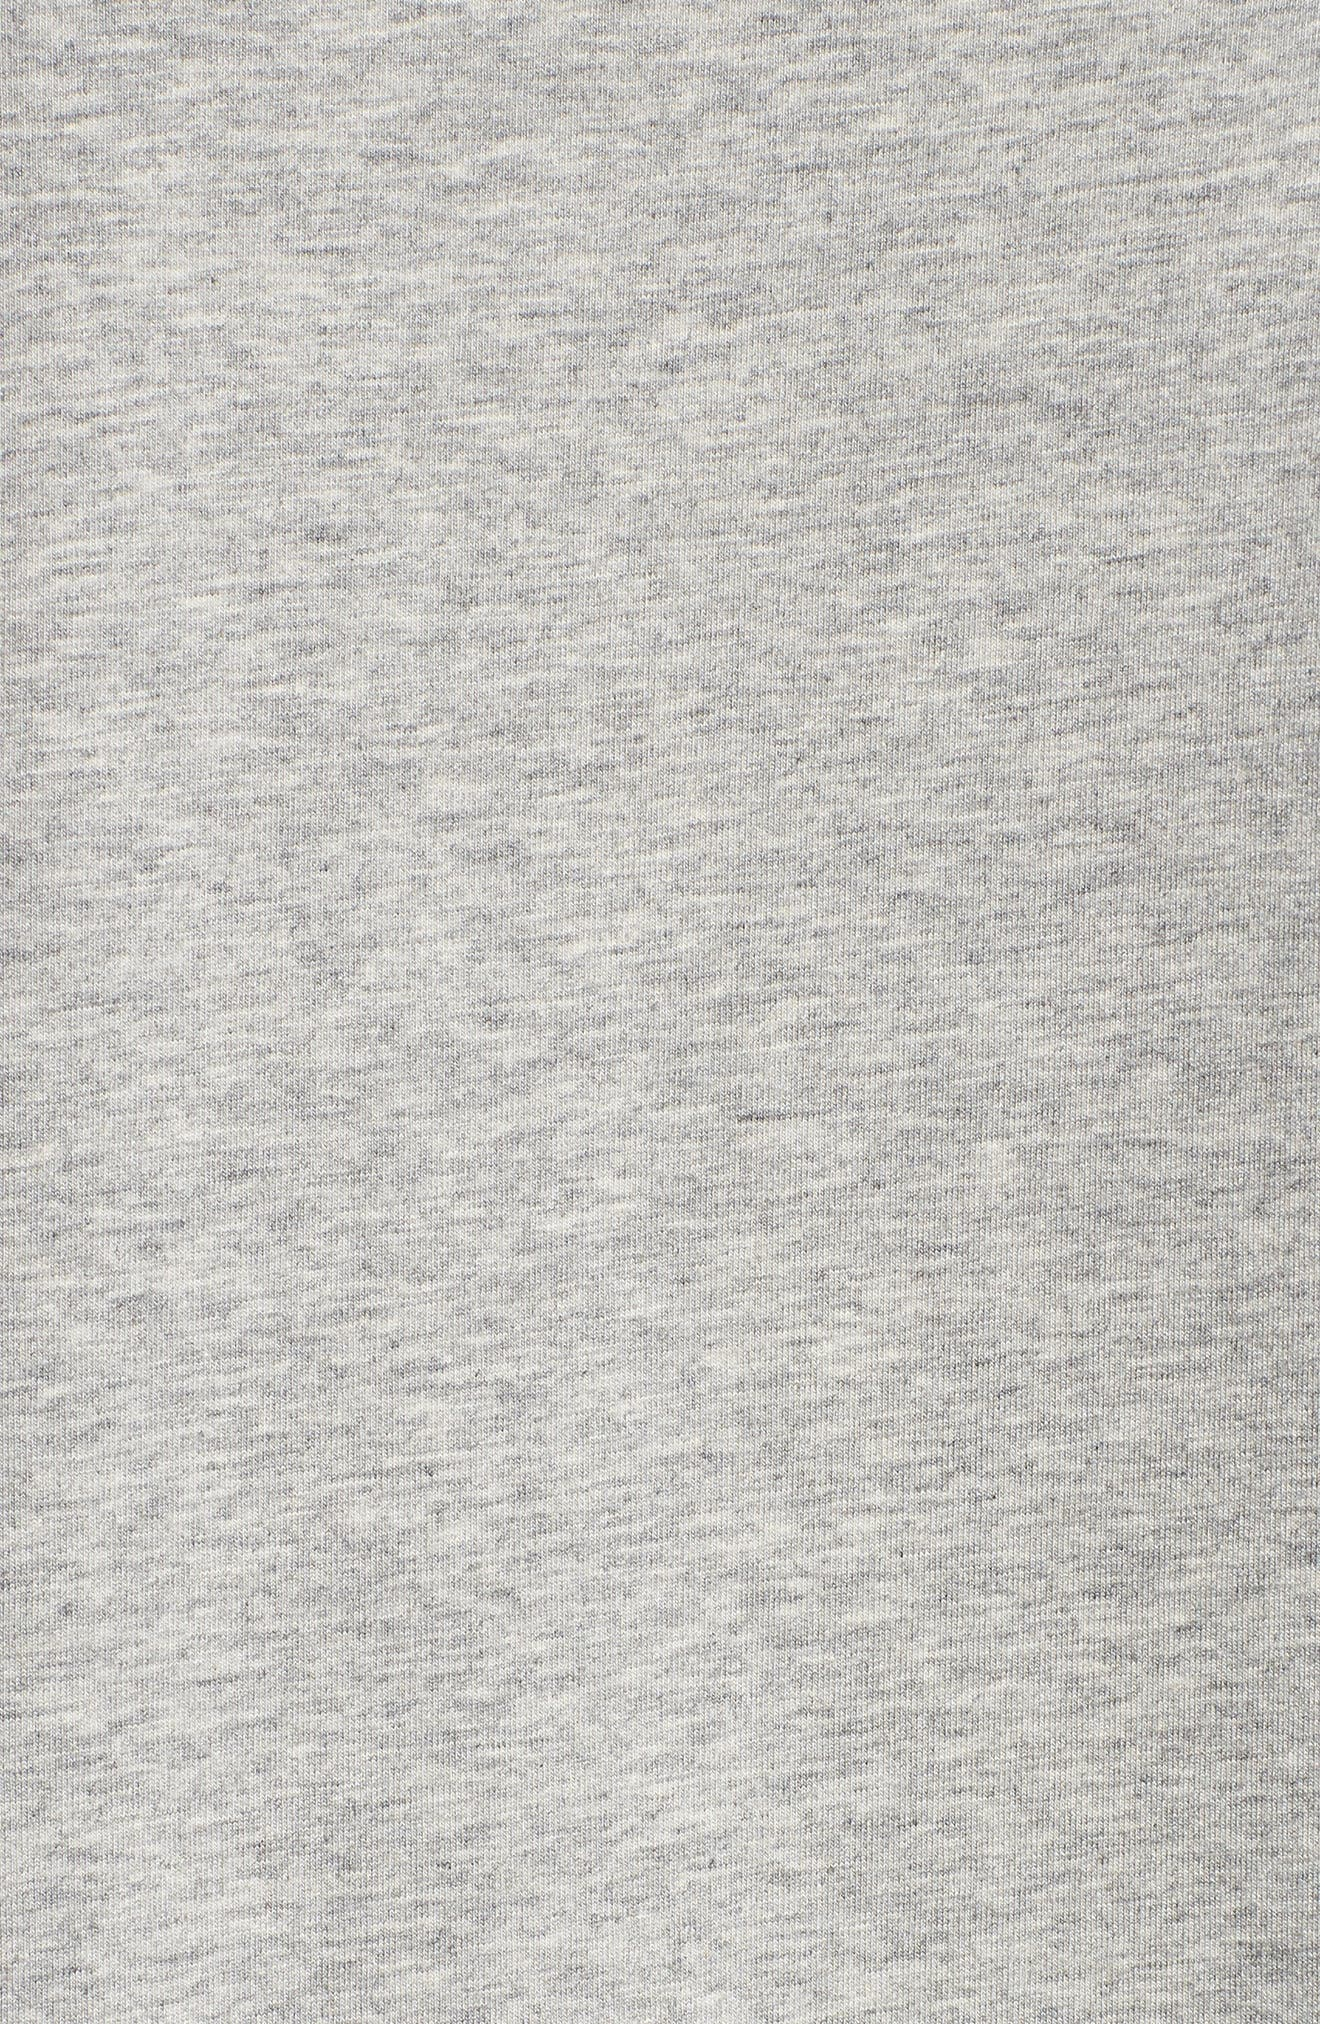 Second Skin Crewneck T-Shirt,                             Alternate thumbnail 5, color,                             HEATHER GREY